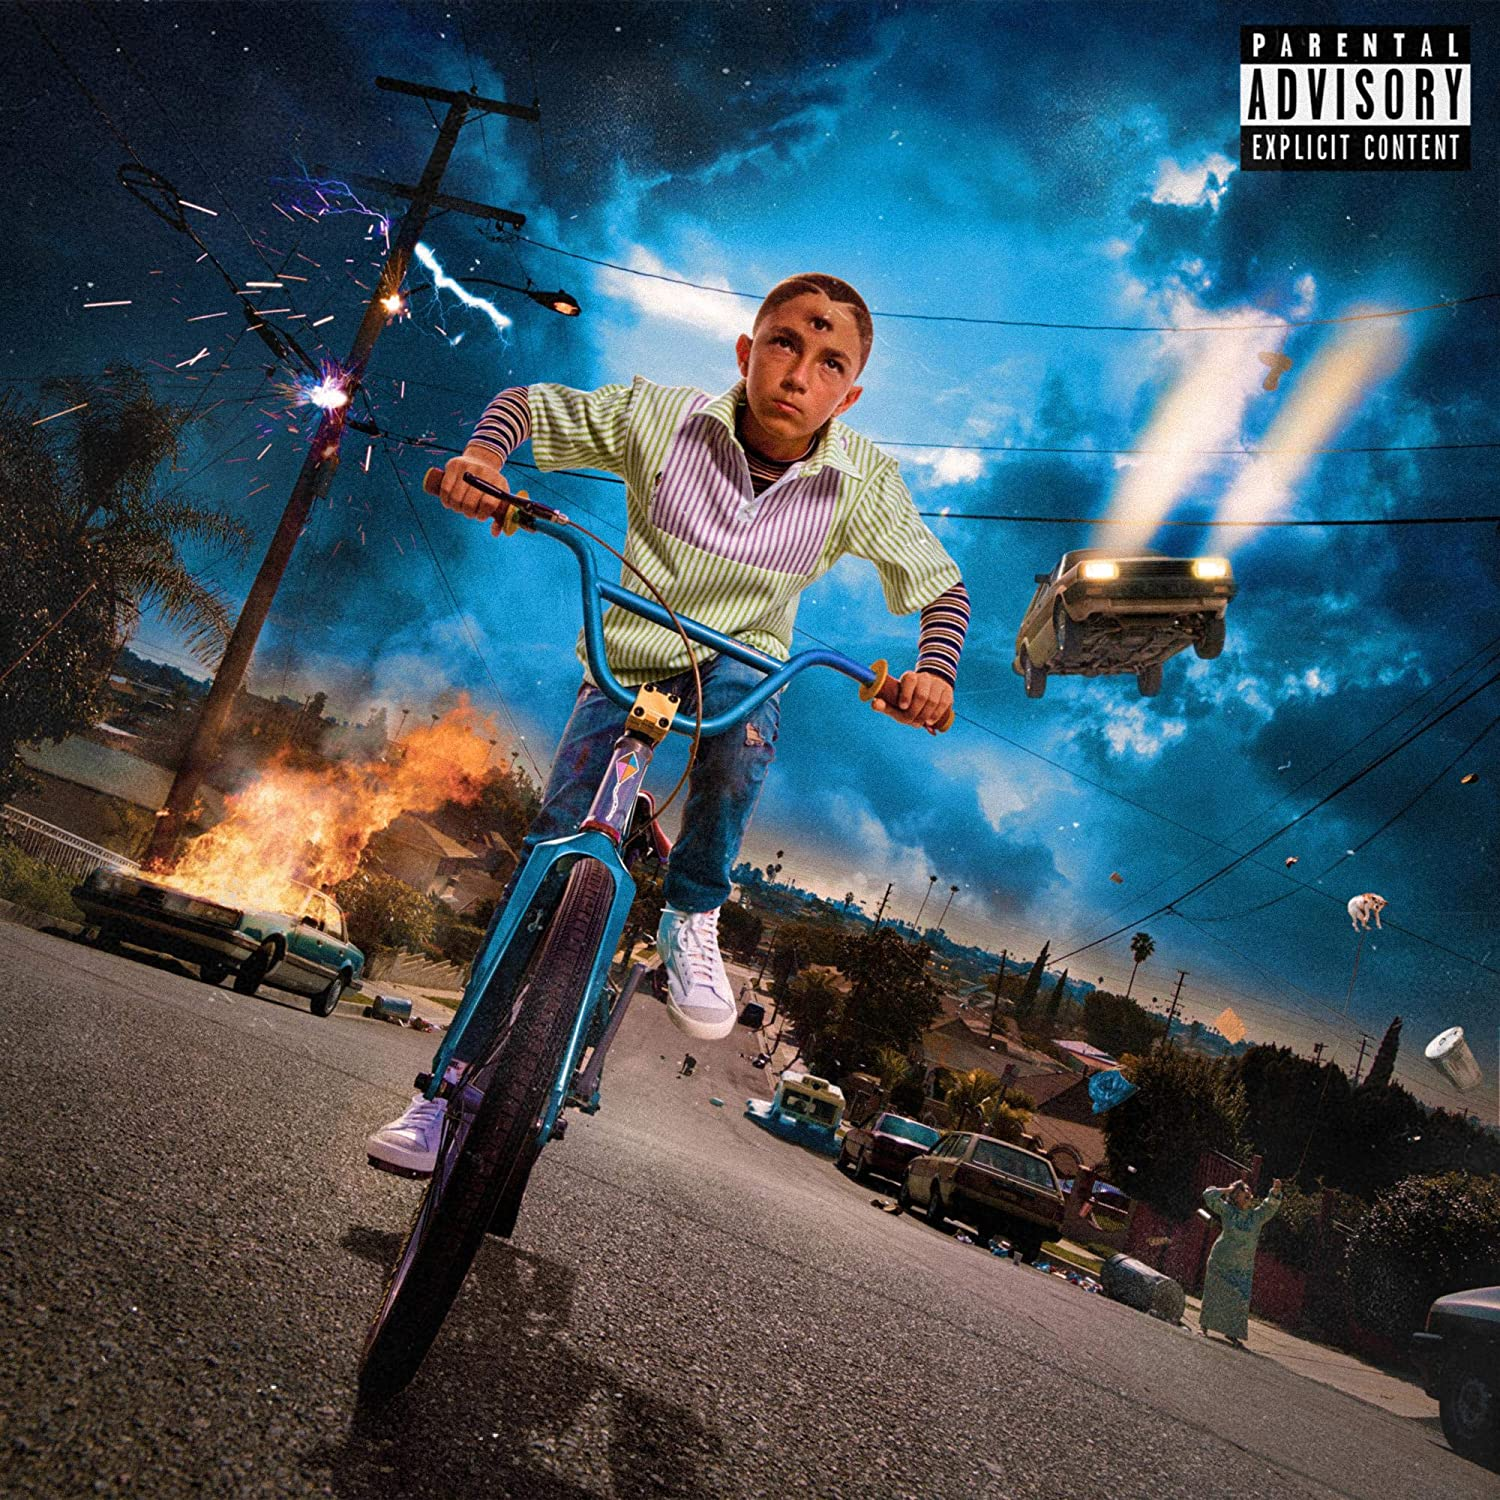 Bad Bunny - Yhlqmdlg [Cassette] - Urban Vinyl | Records, Headphones, and more.